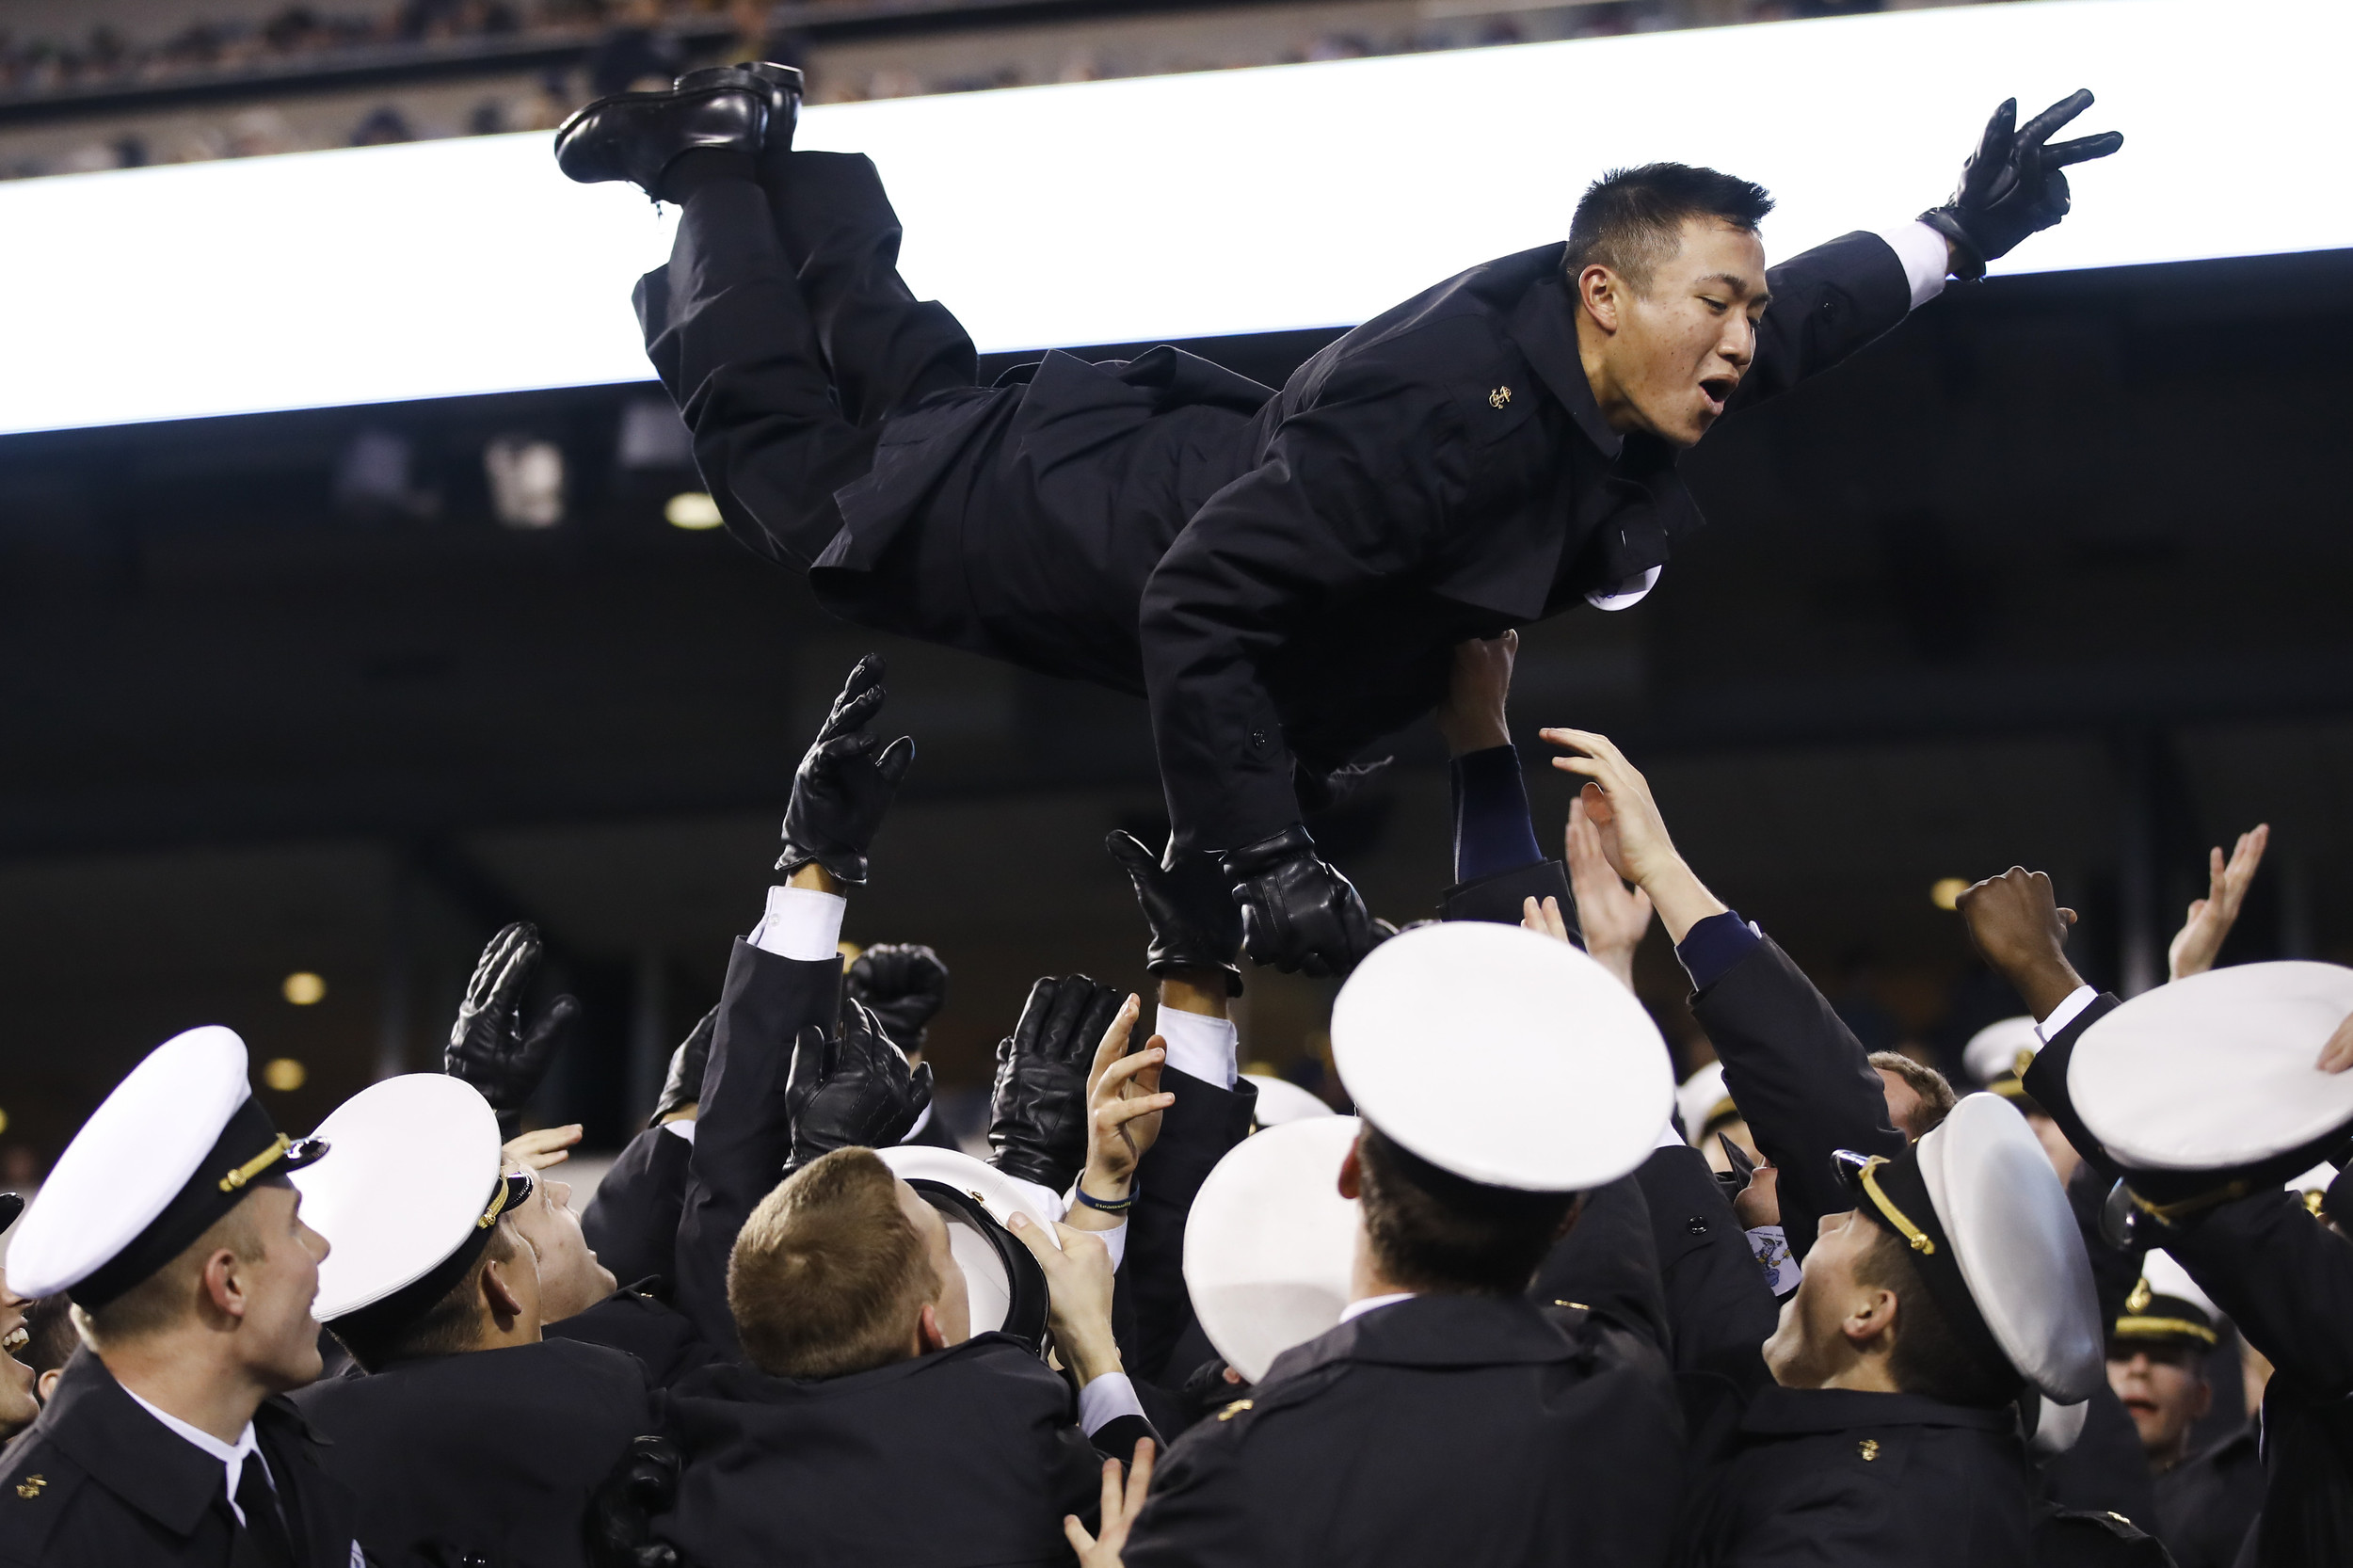 Hate Sign Or Silly Game? Military Academies Probe Hand Signs